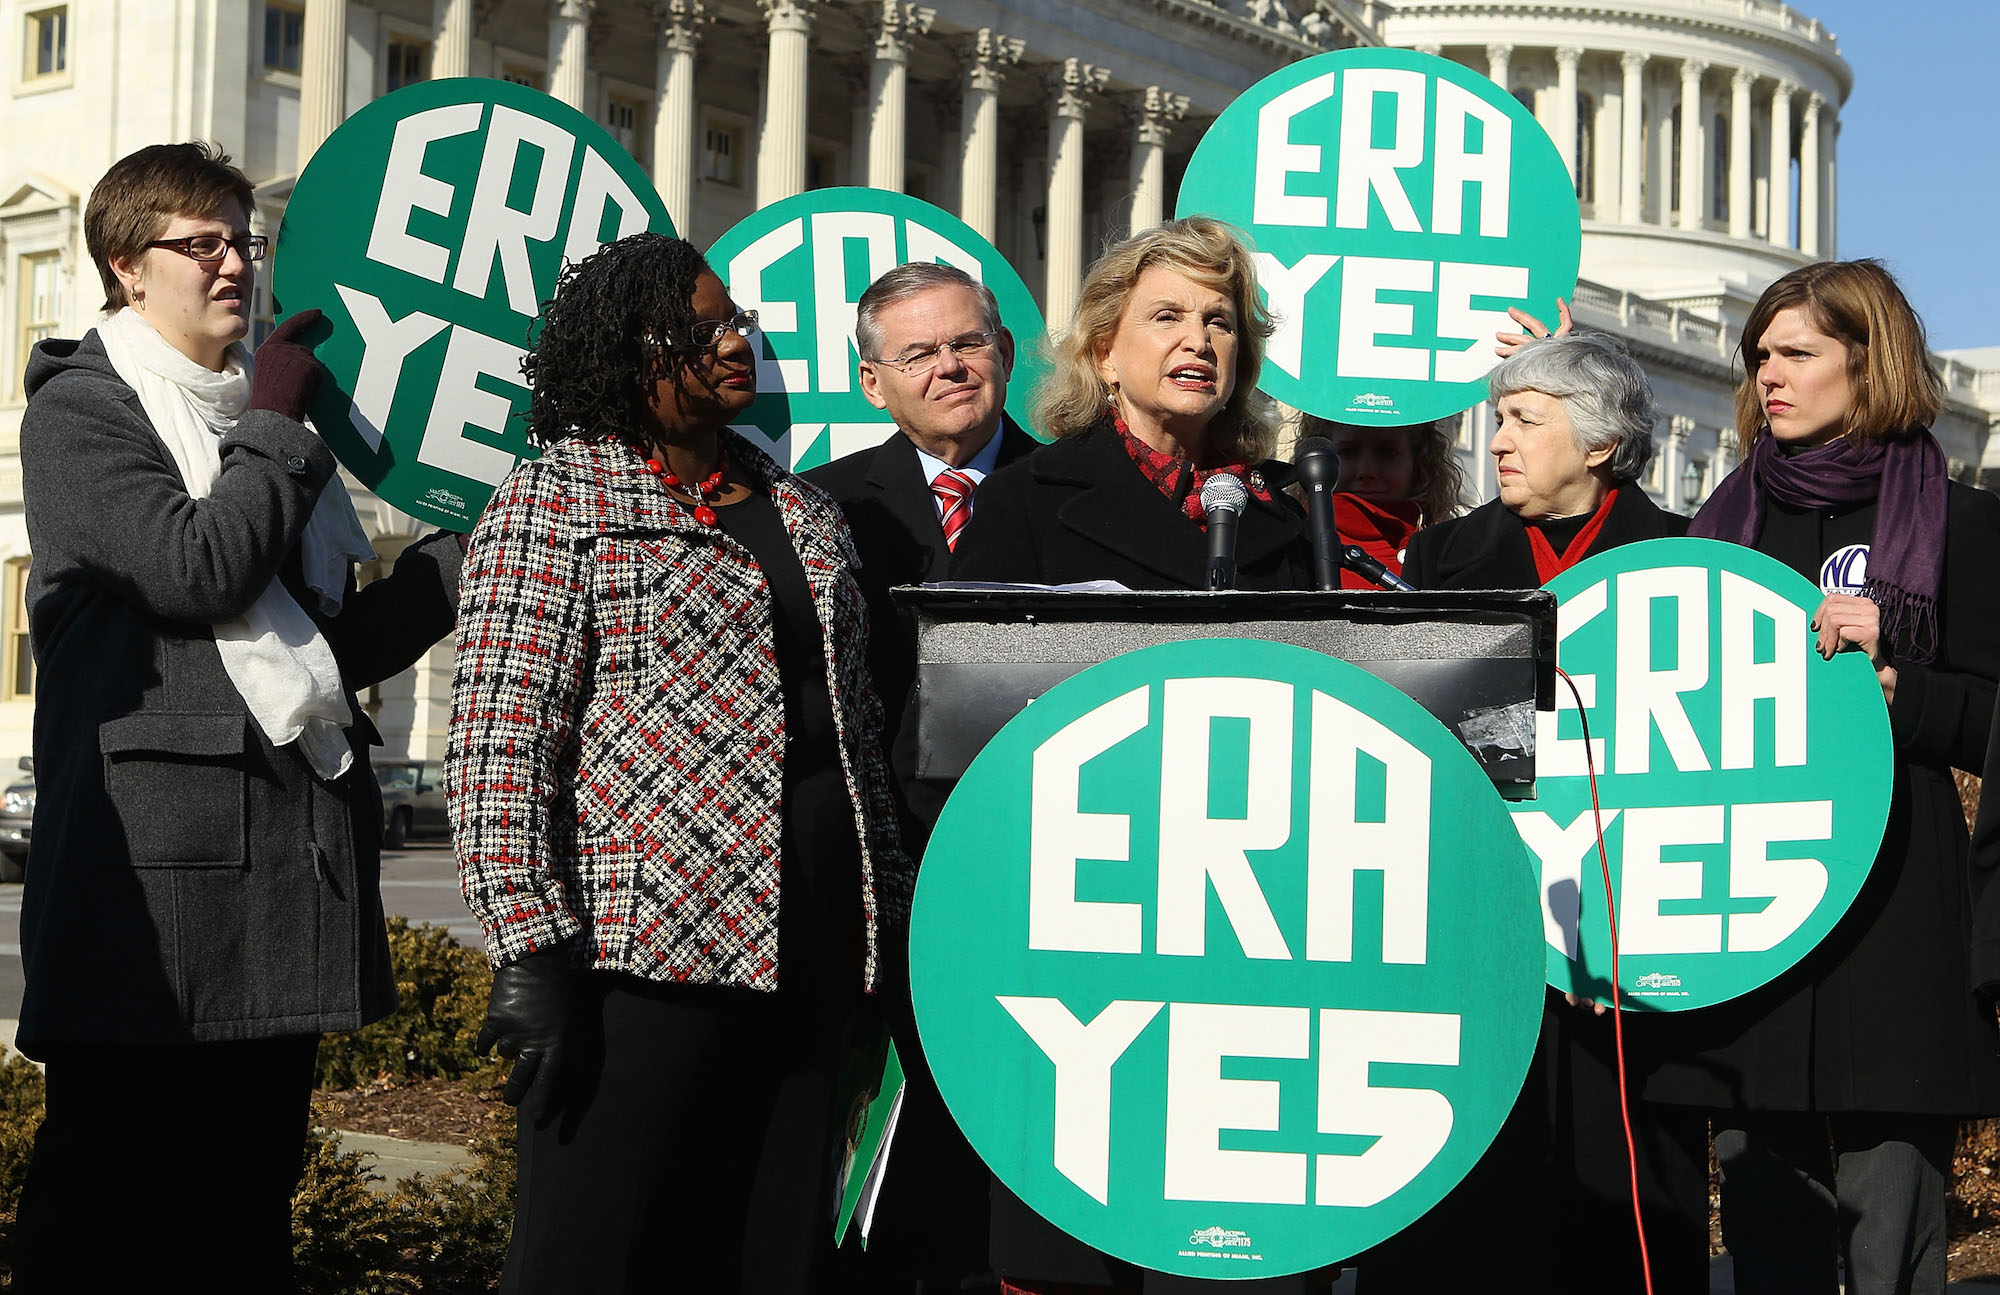 The Equal Rights Amendment: One More to Go